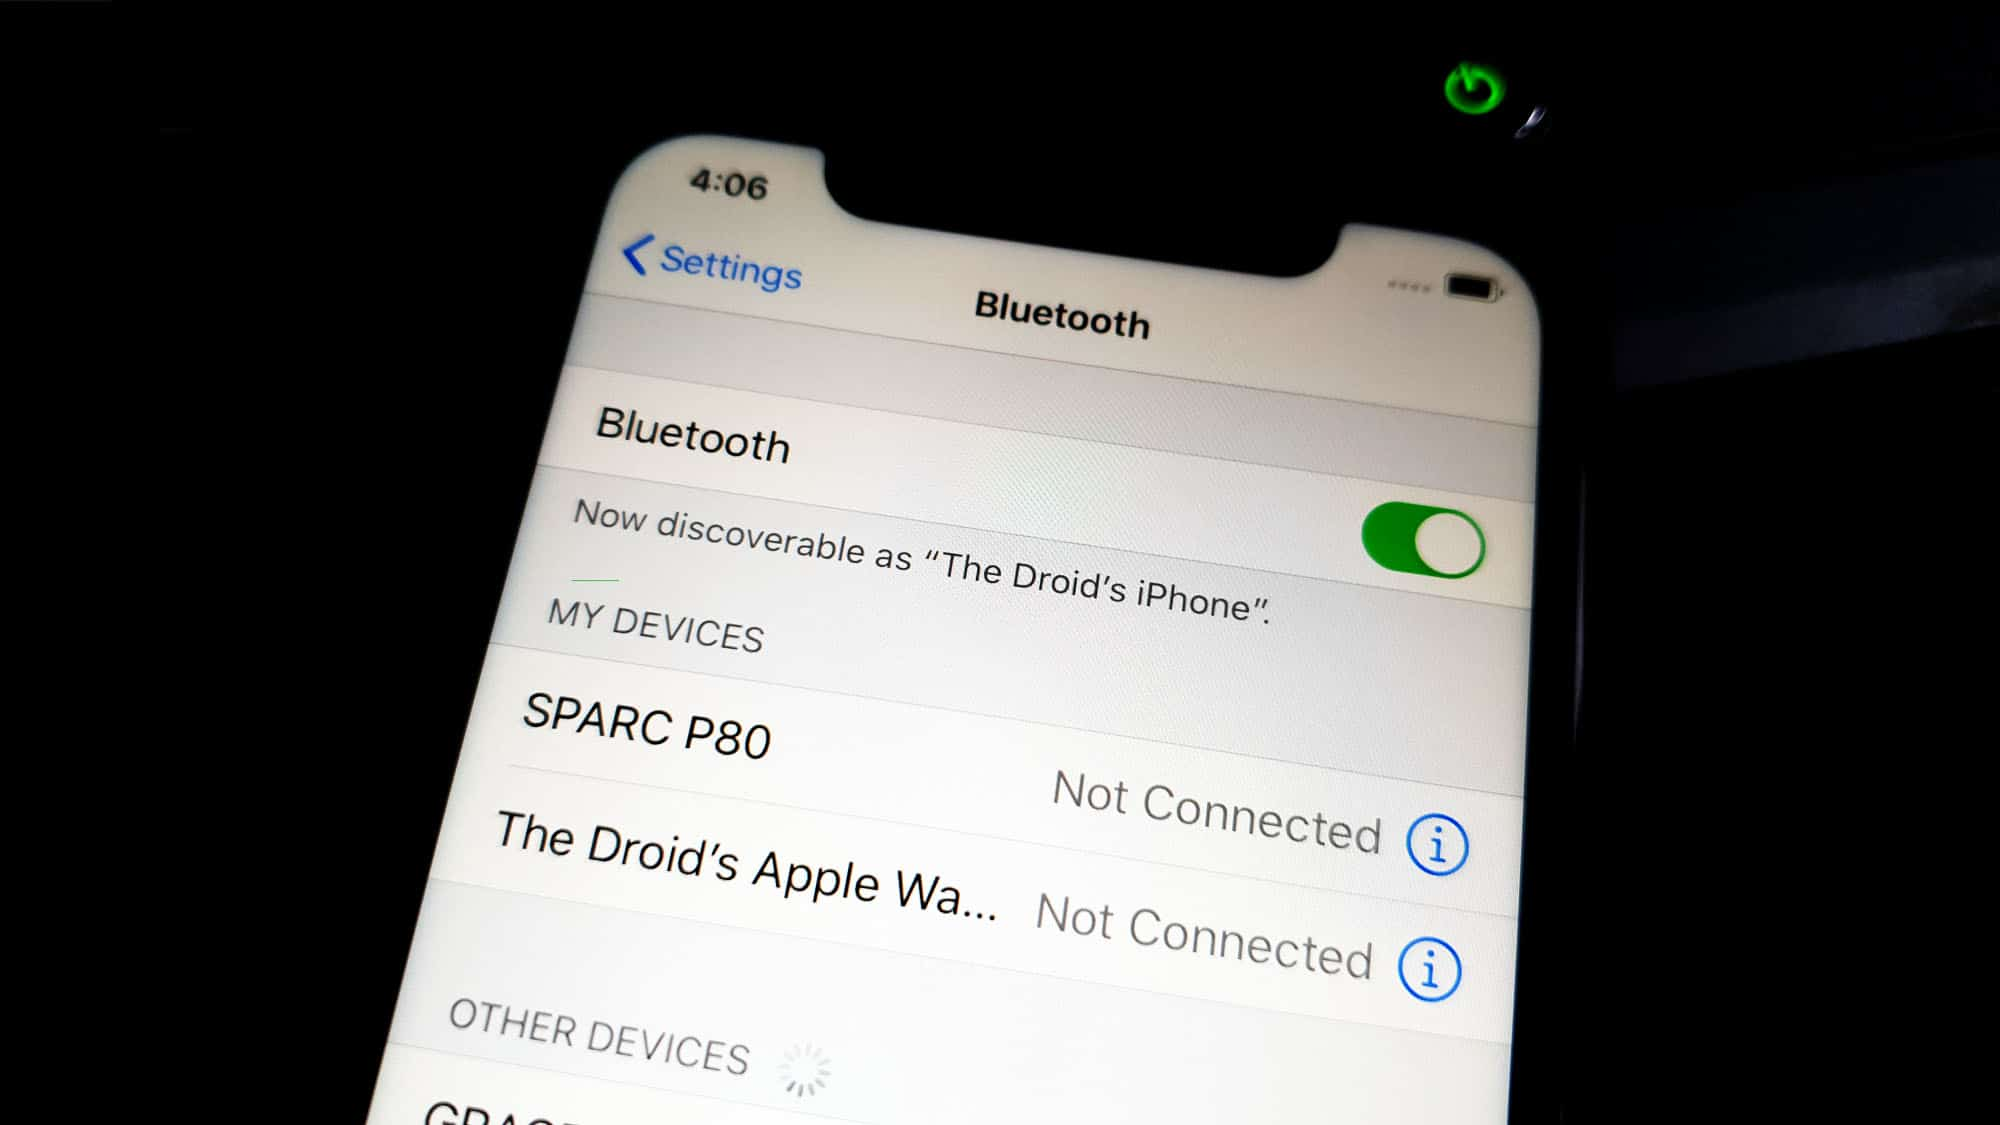 iphone bluetooth not working